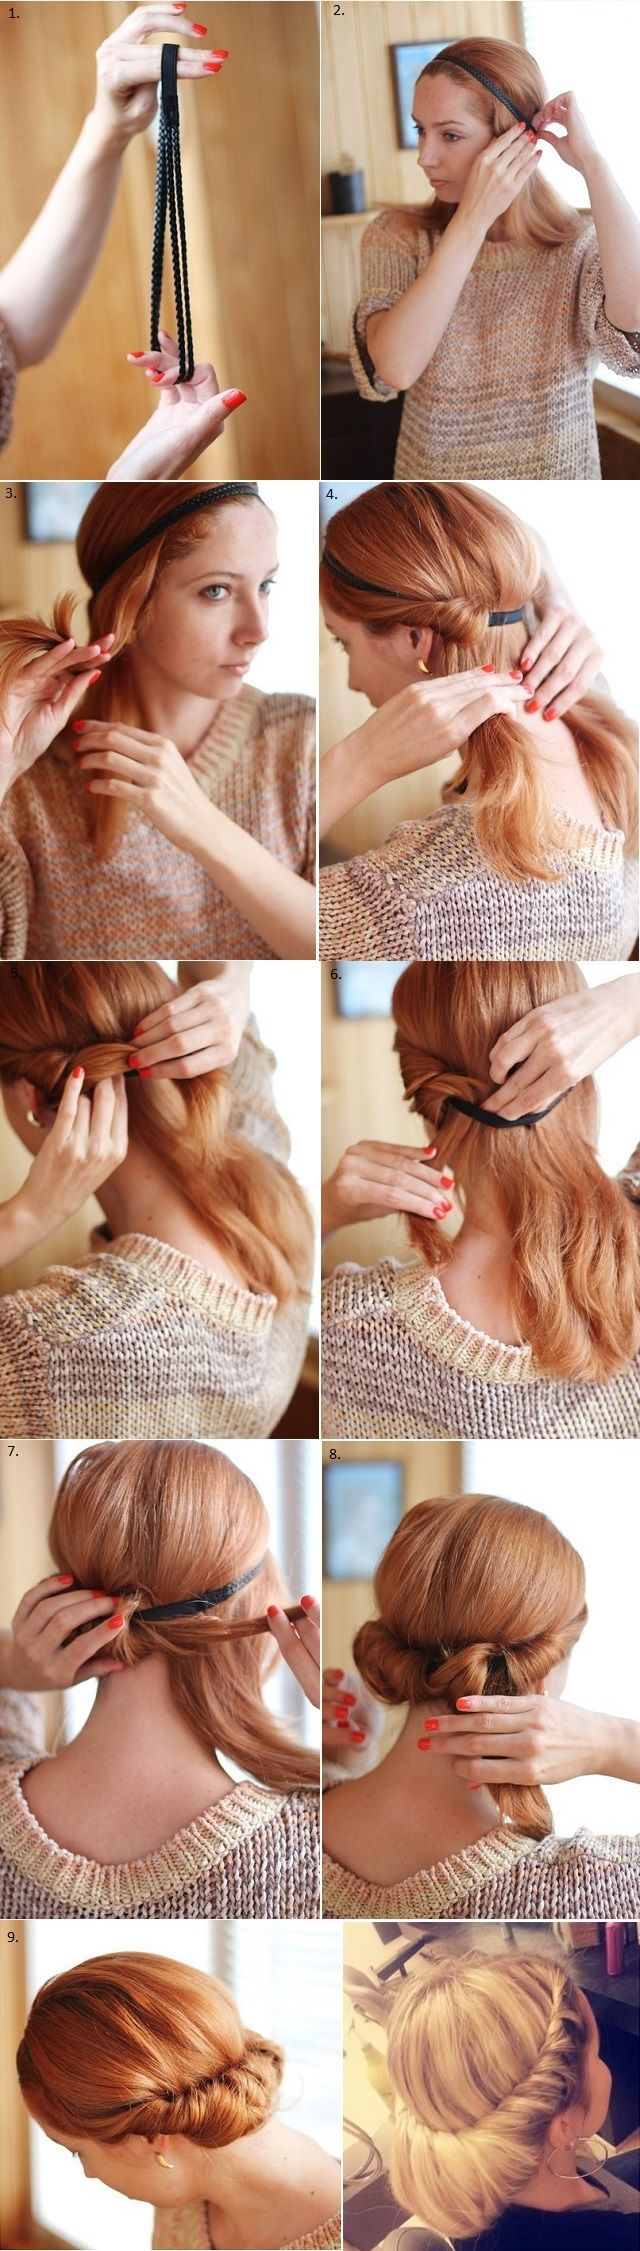 Ringlet headband hairstyle easy hair style and hair and beauty